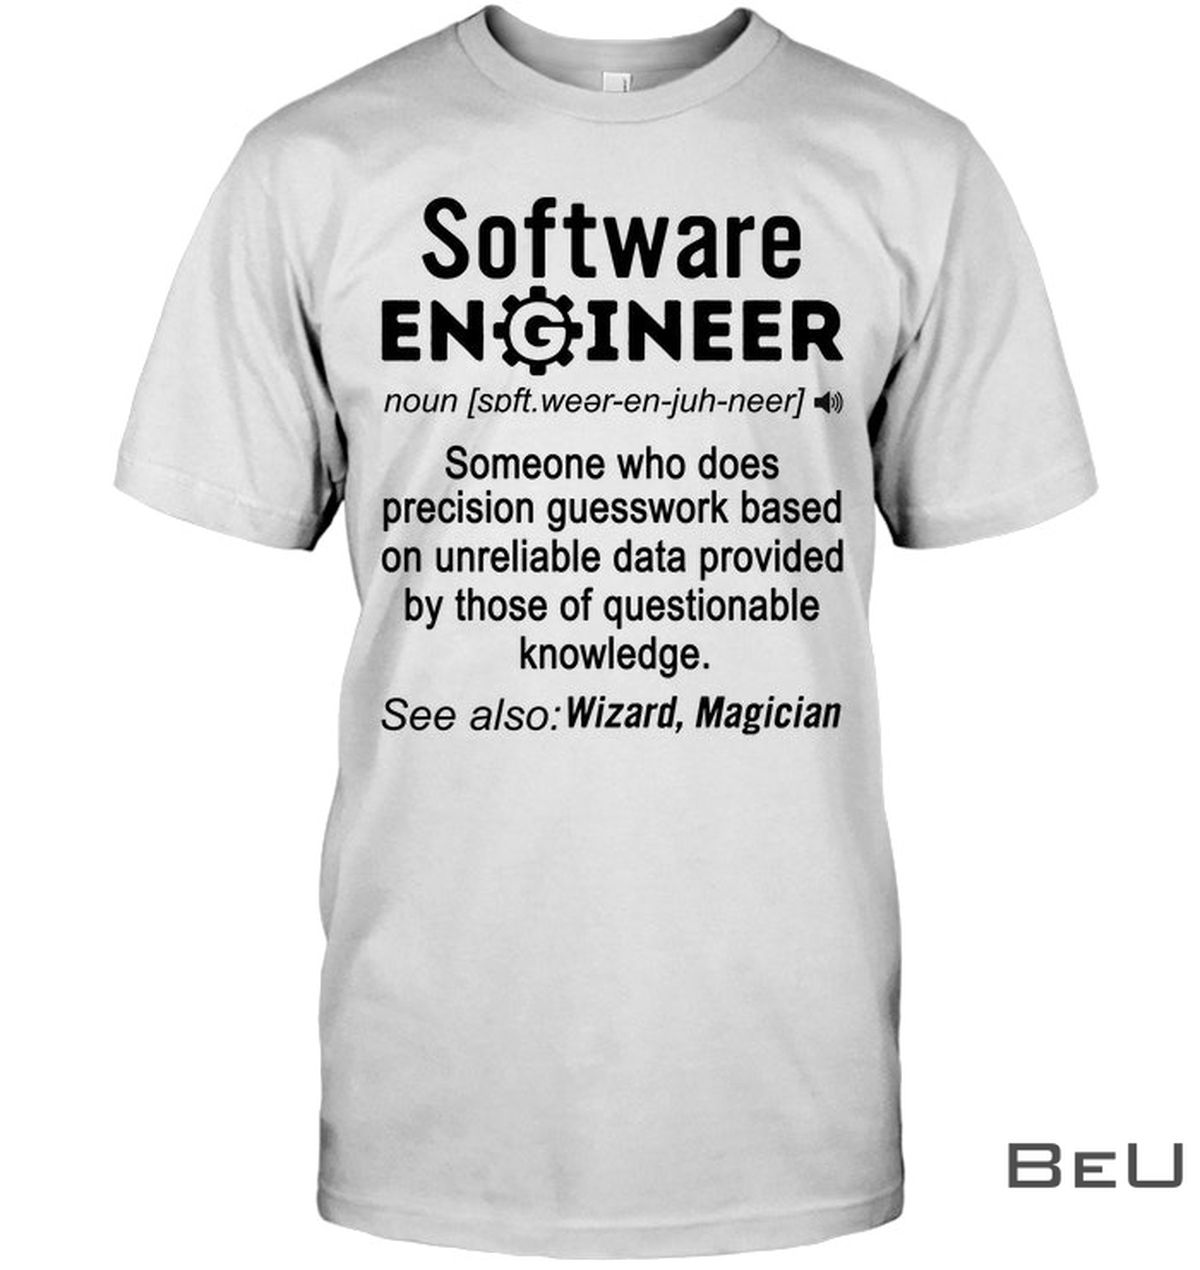 Software Engineer Definition Funny Shirt, hoodie, tank top